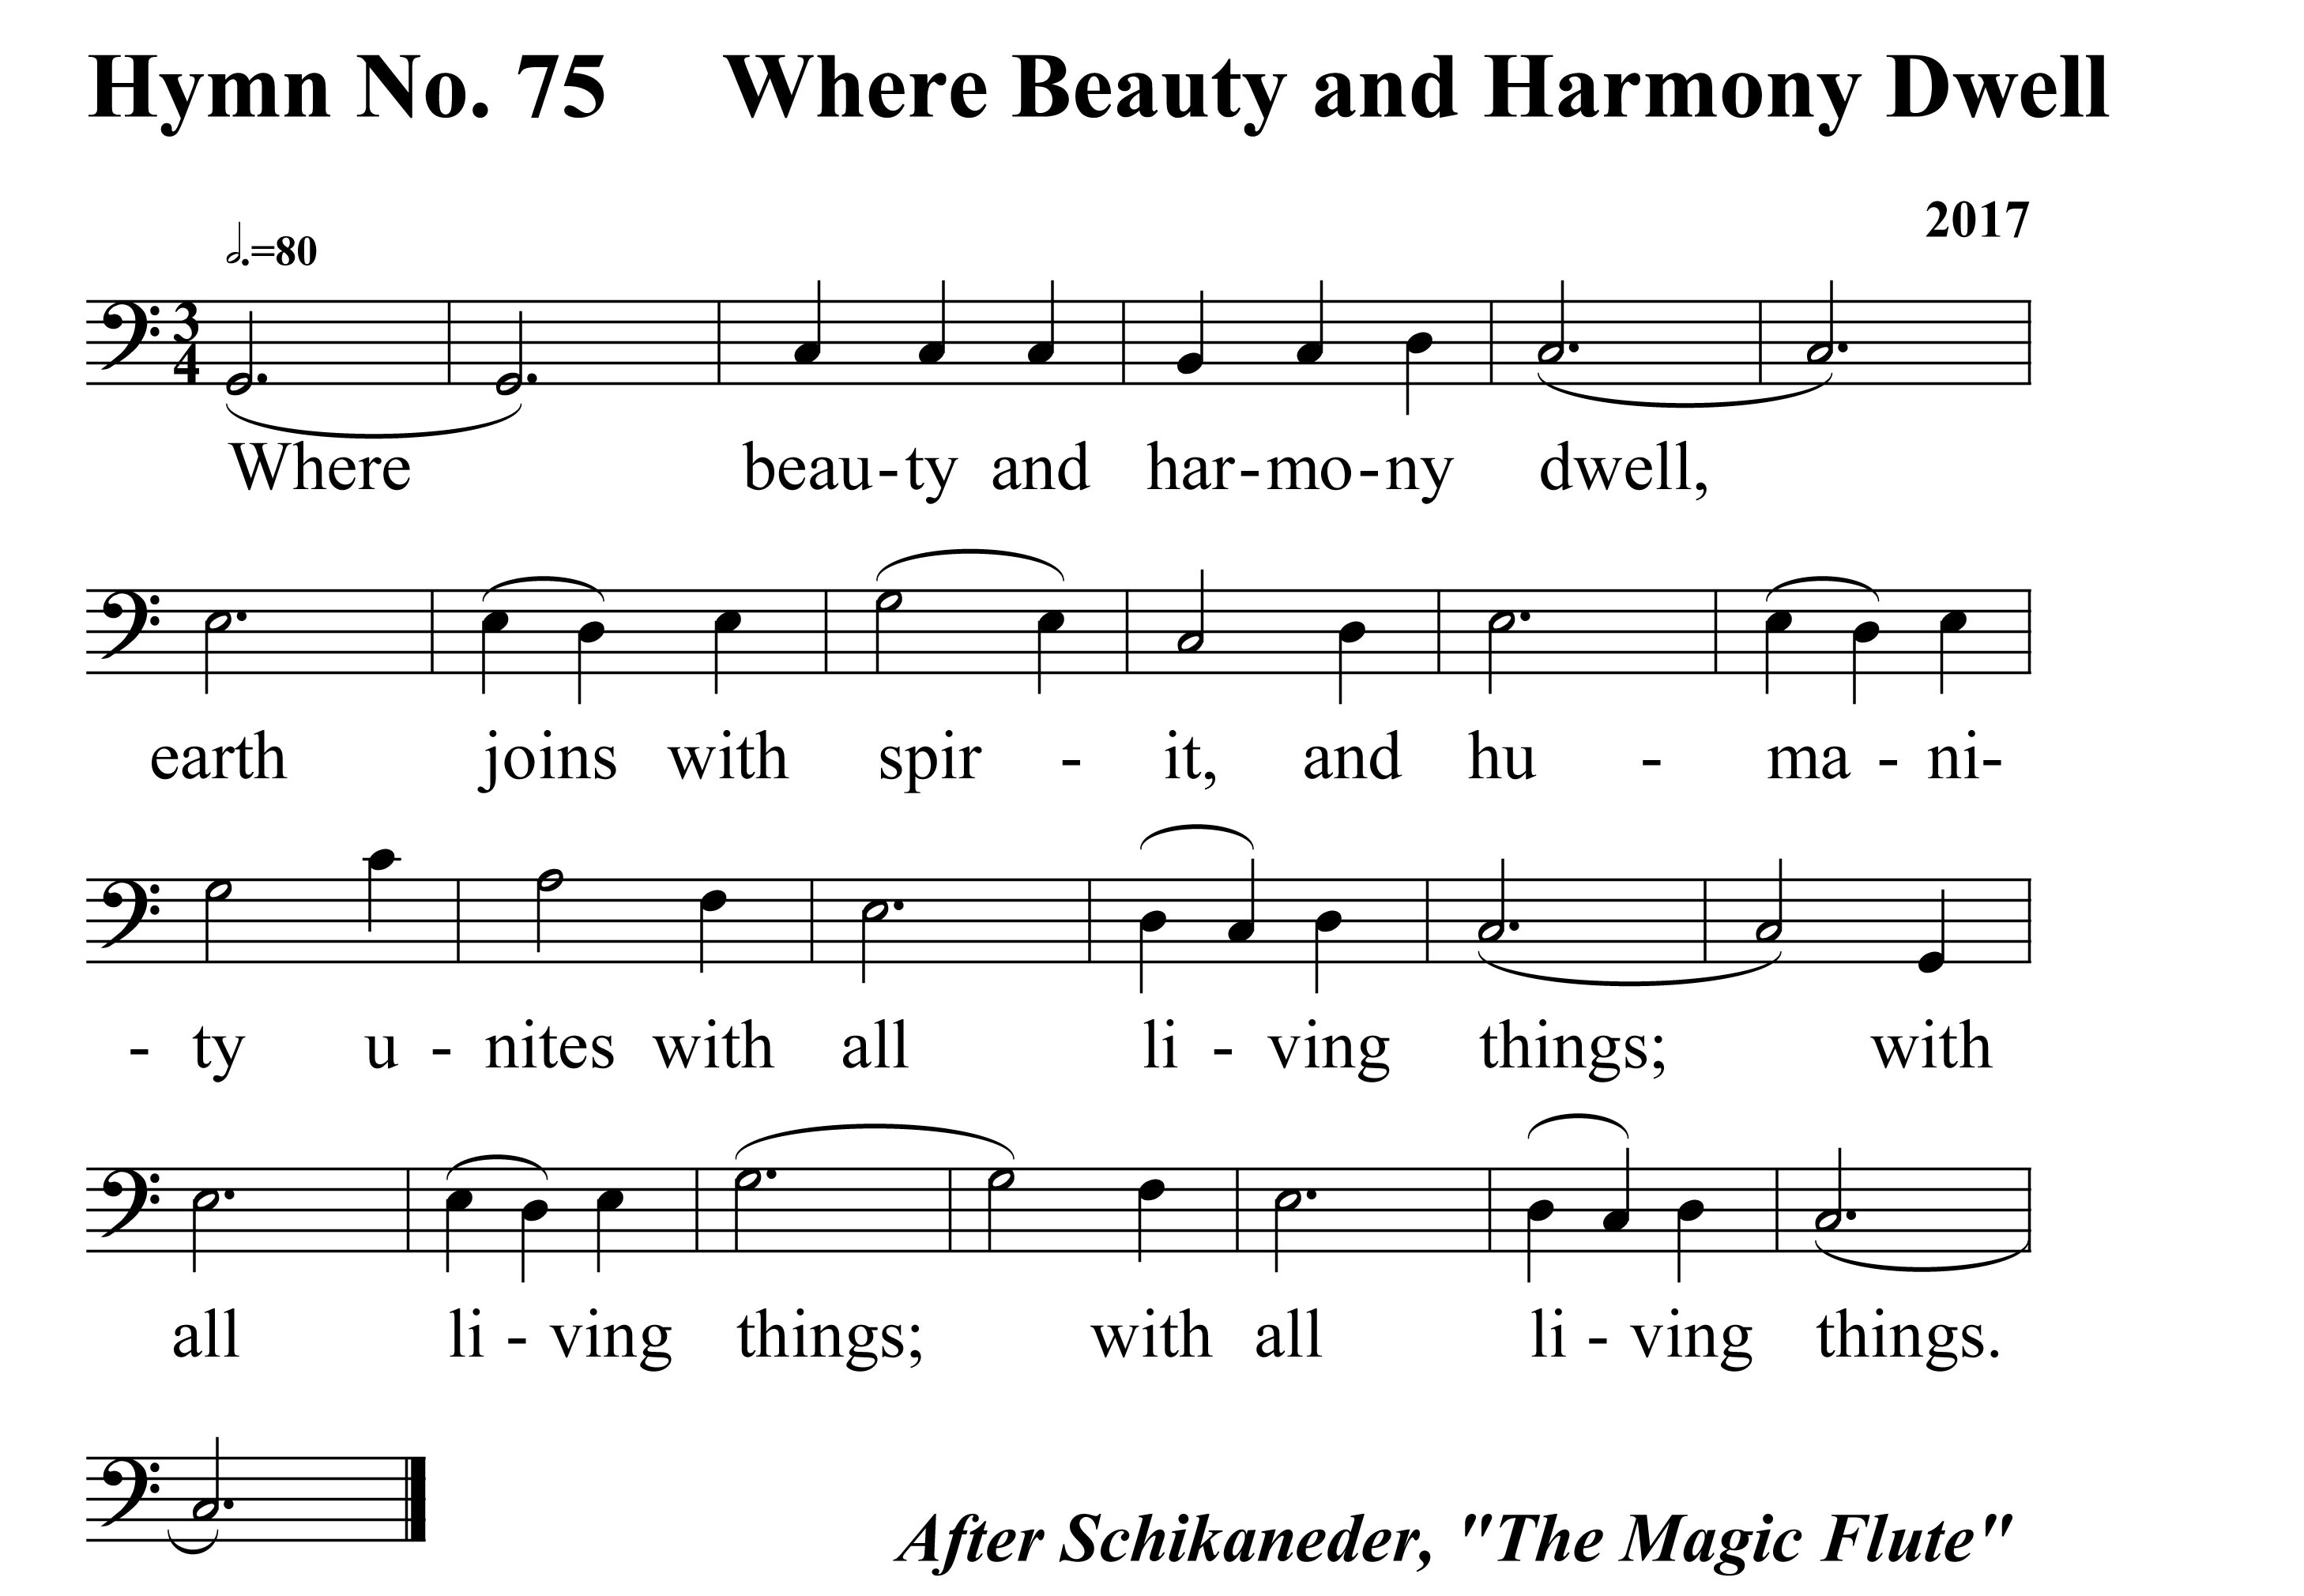 Hymn No. 75 Where Beauty and Harmony Dwell